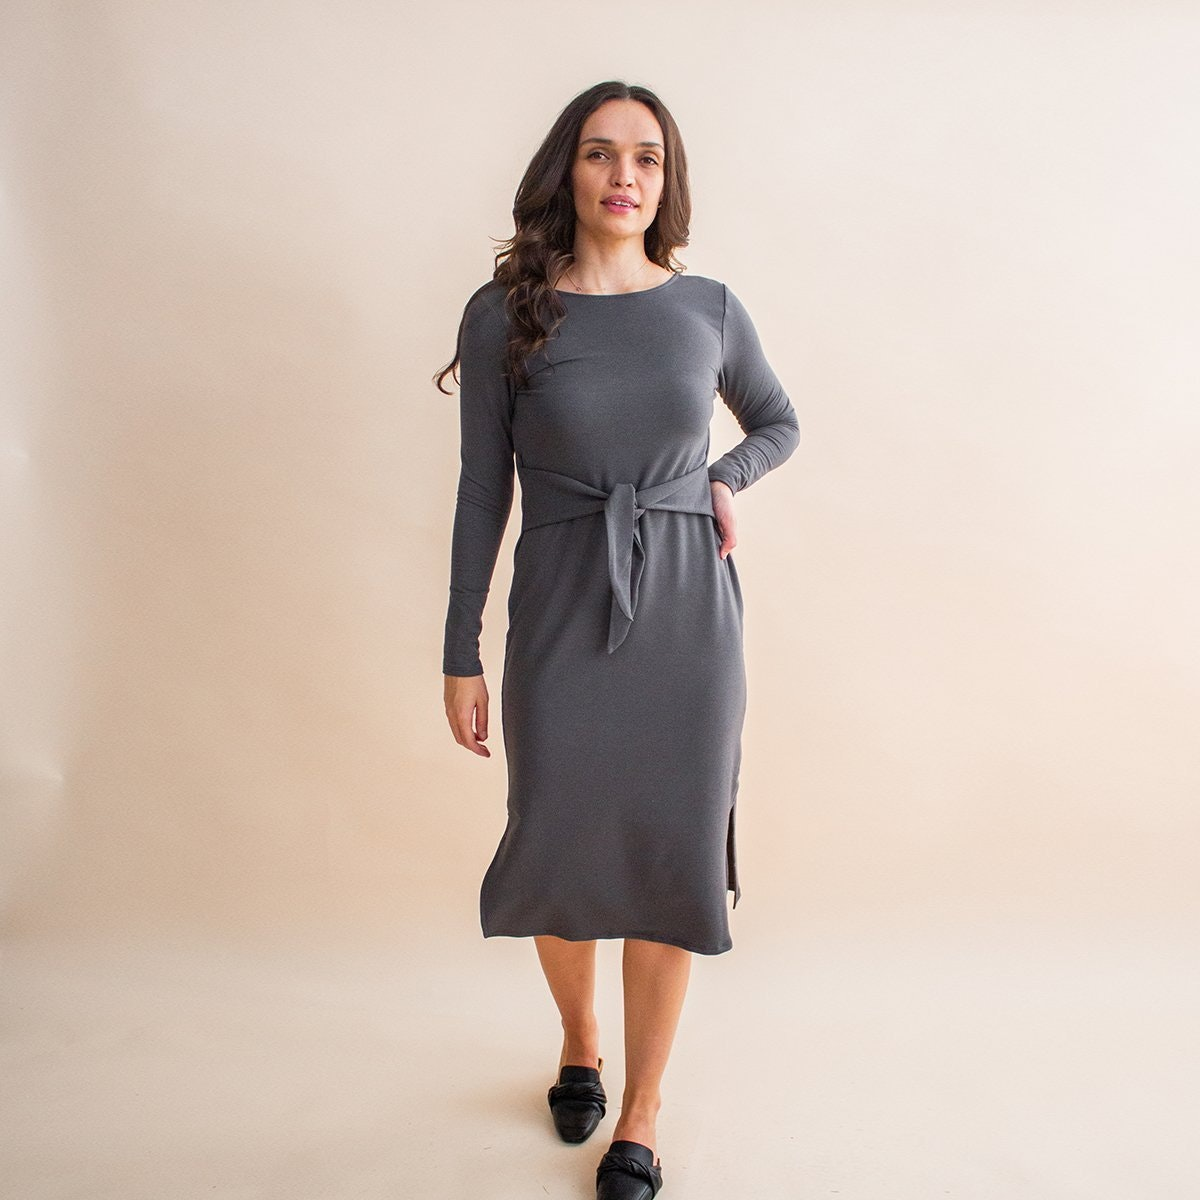 The Everyday House Dress by Encircled